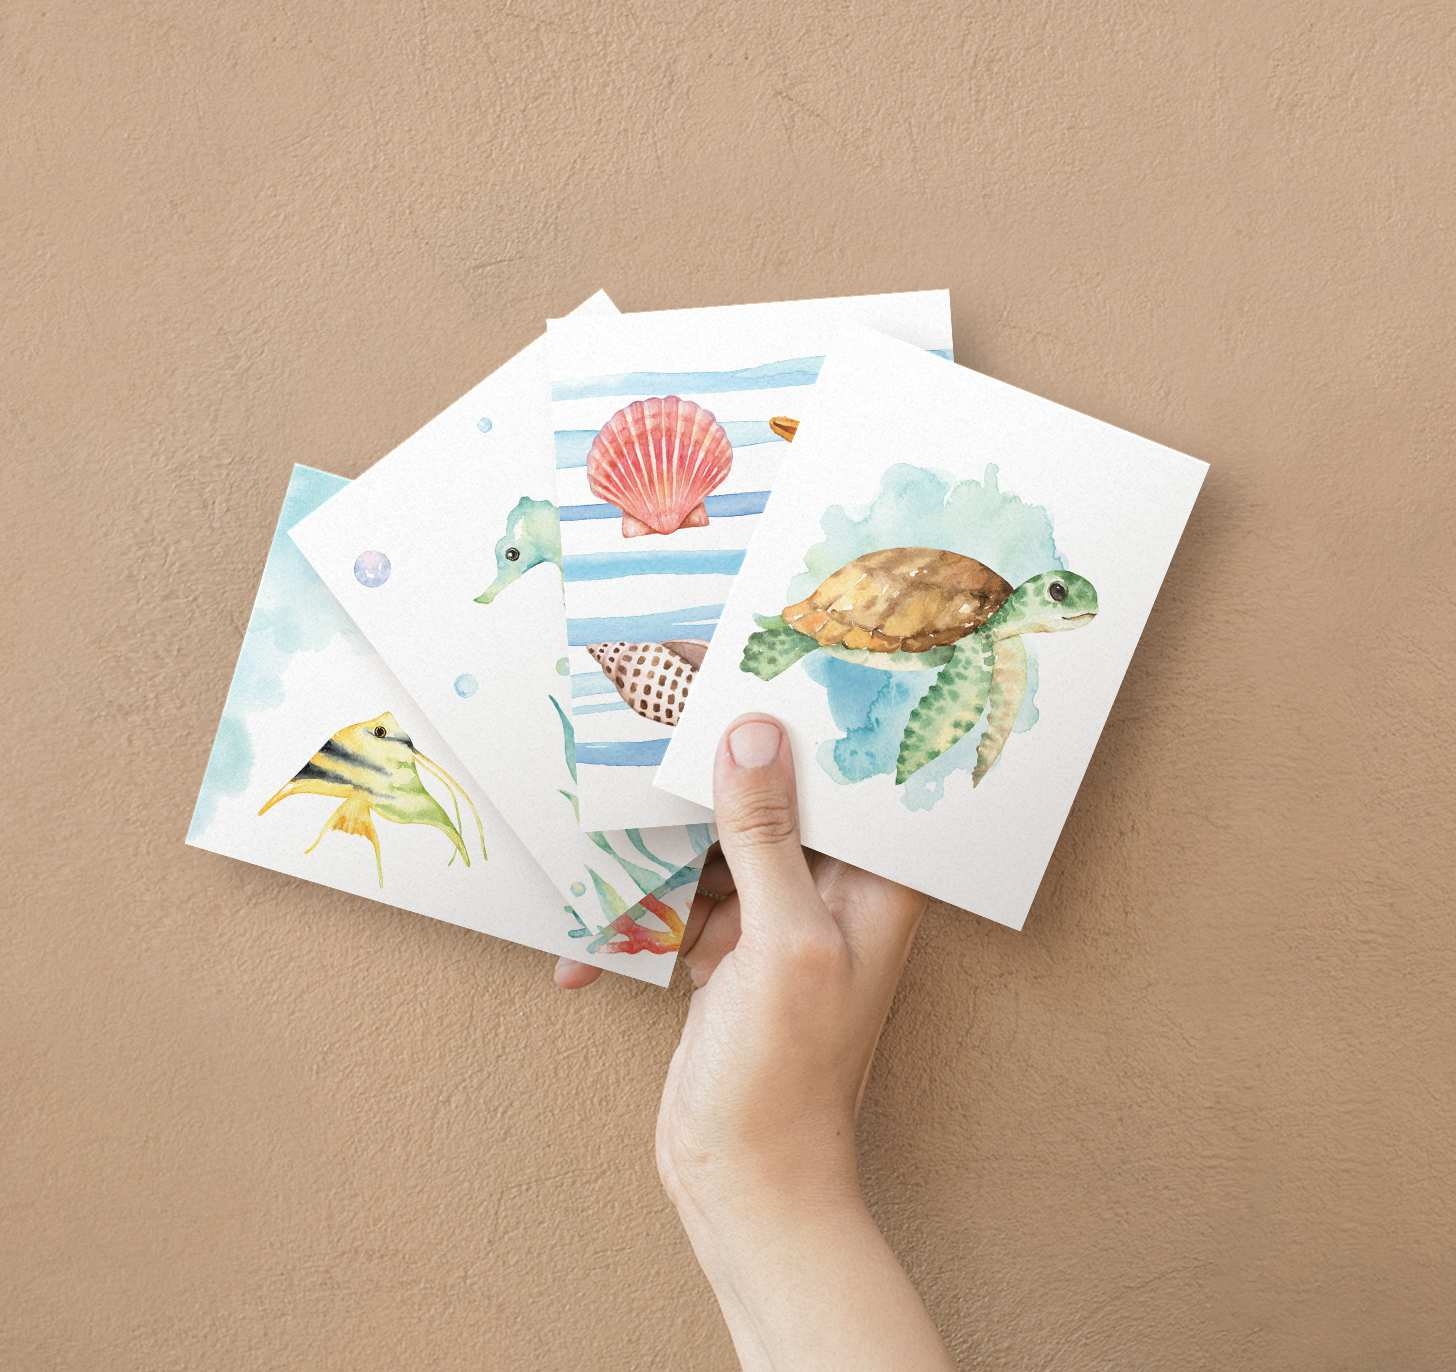 Woman's hand holding four overlapping cards with sea turtle, seahorse, seashells, and fish designs